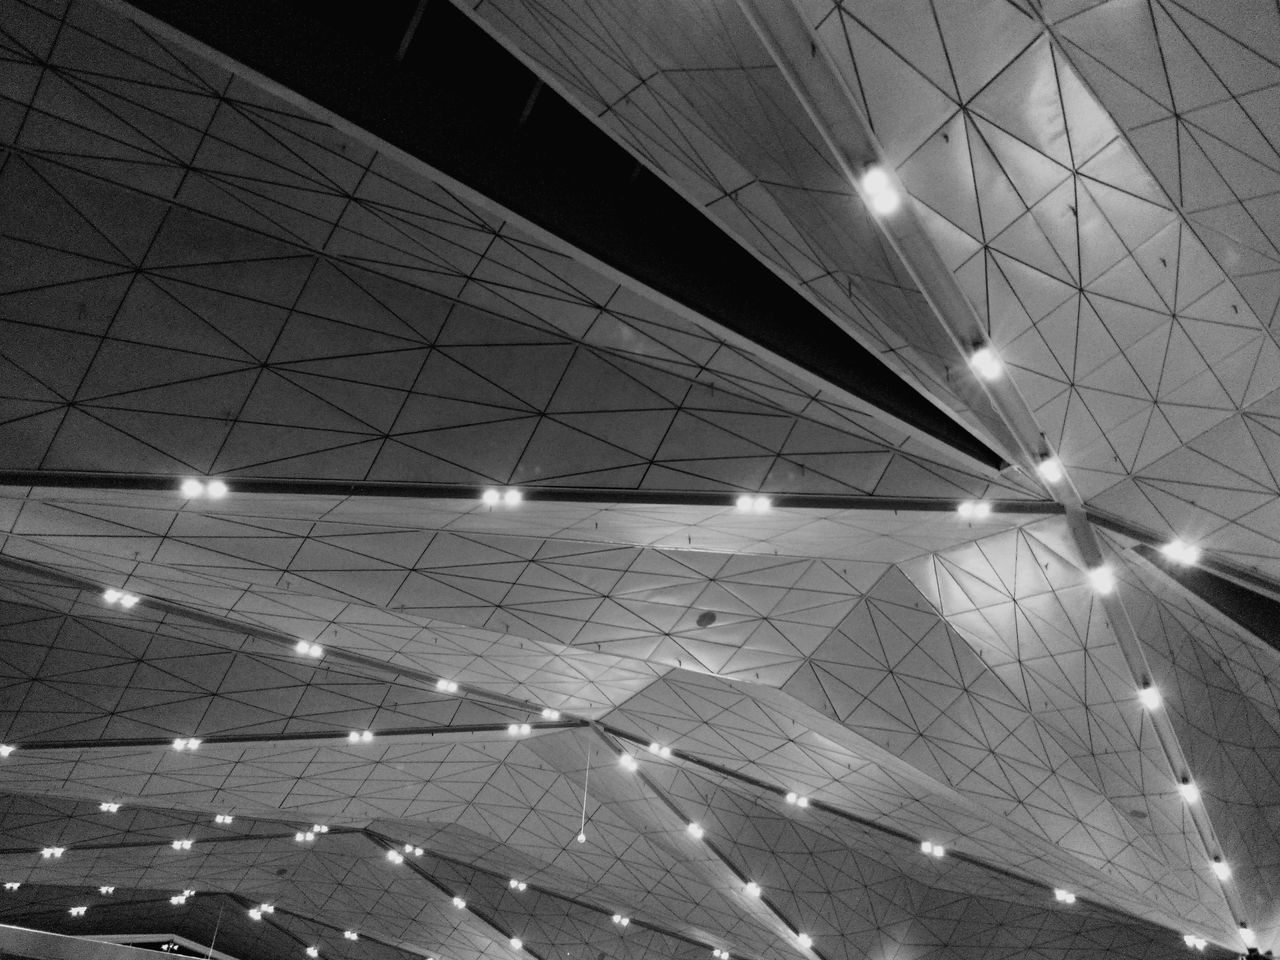 ceiling, indoors, illuminated, no people, low angle view, architecture, day